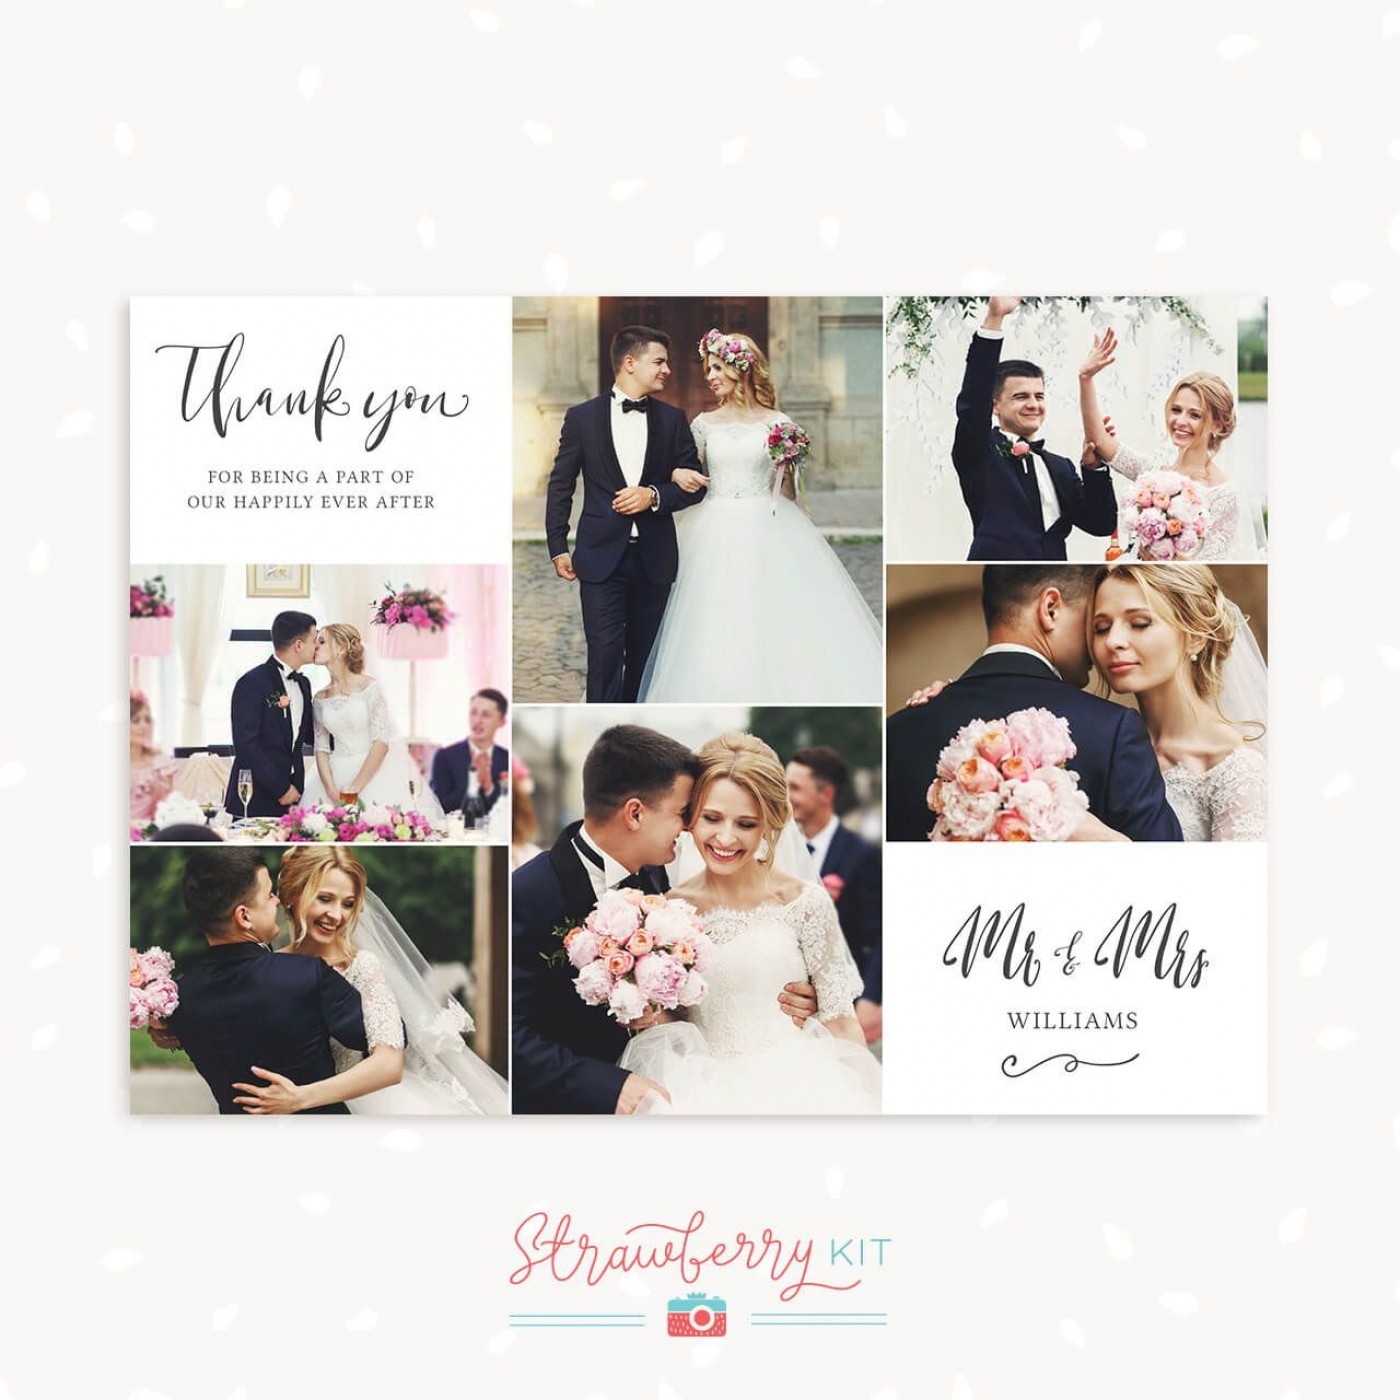 005 Excellent Wedding Thank You Card Template Idea  Photoshop Word Etsy1400